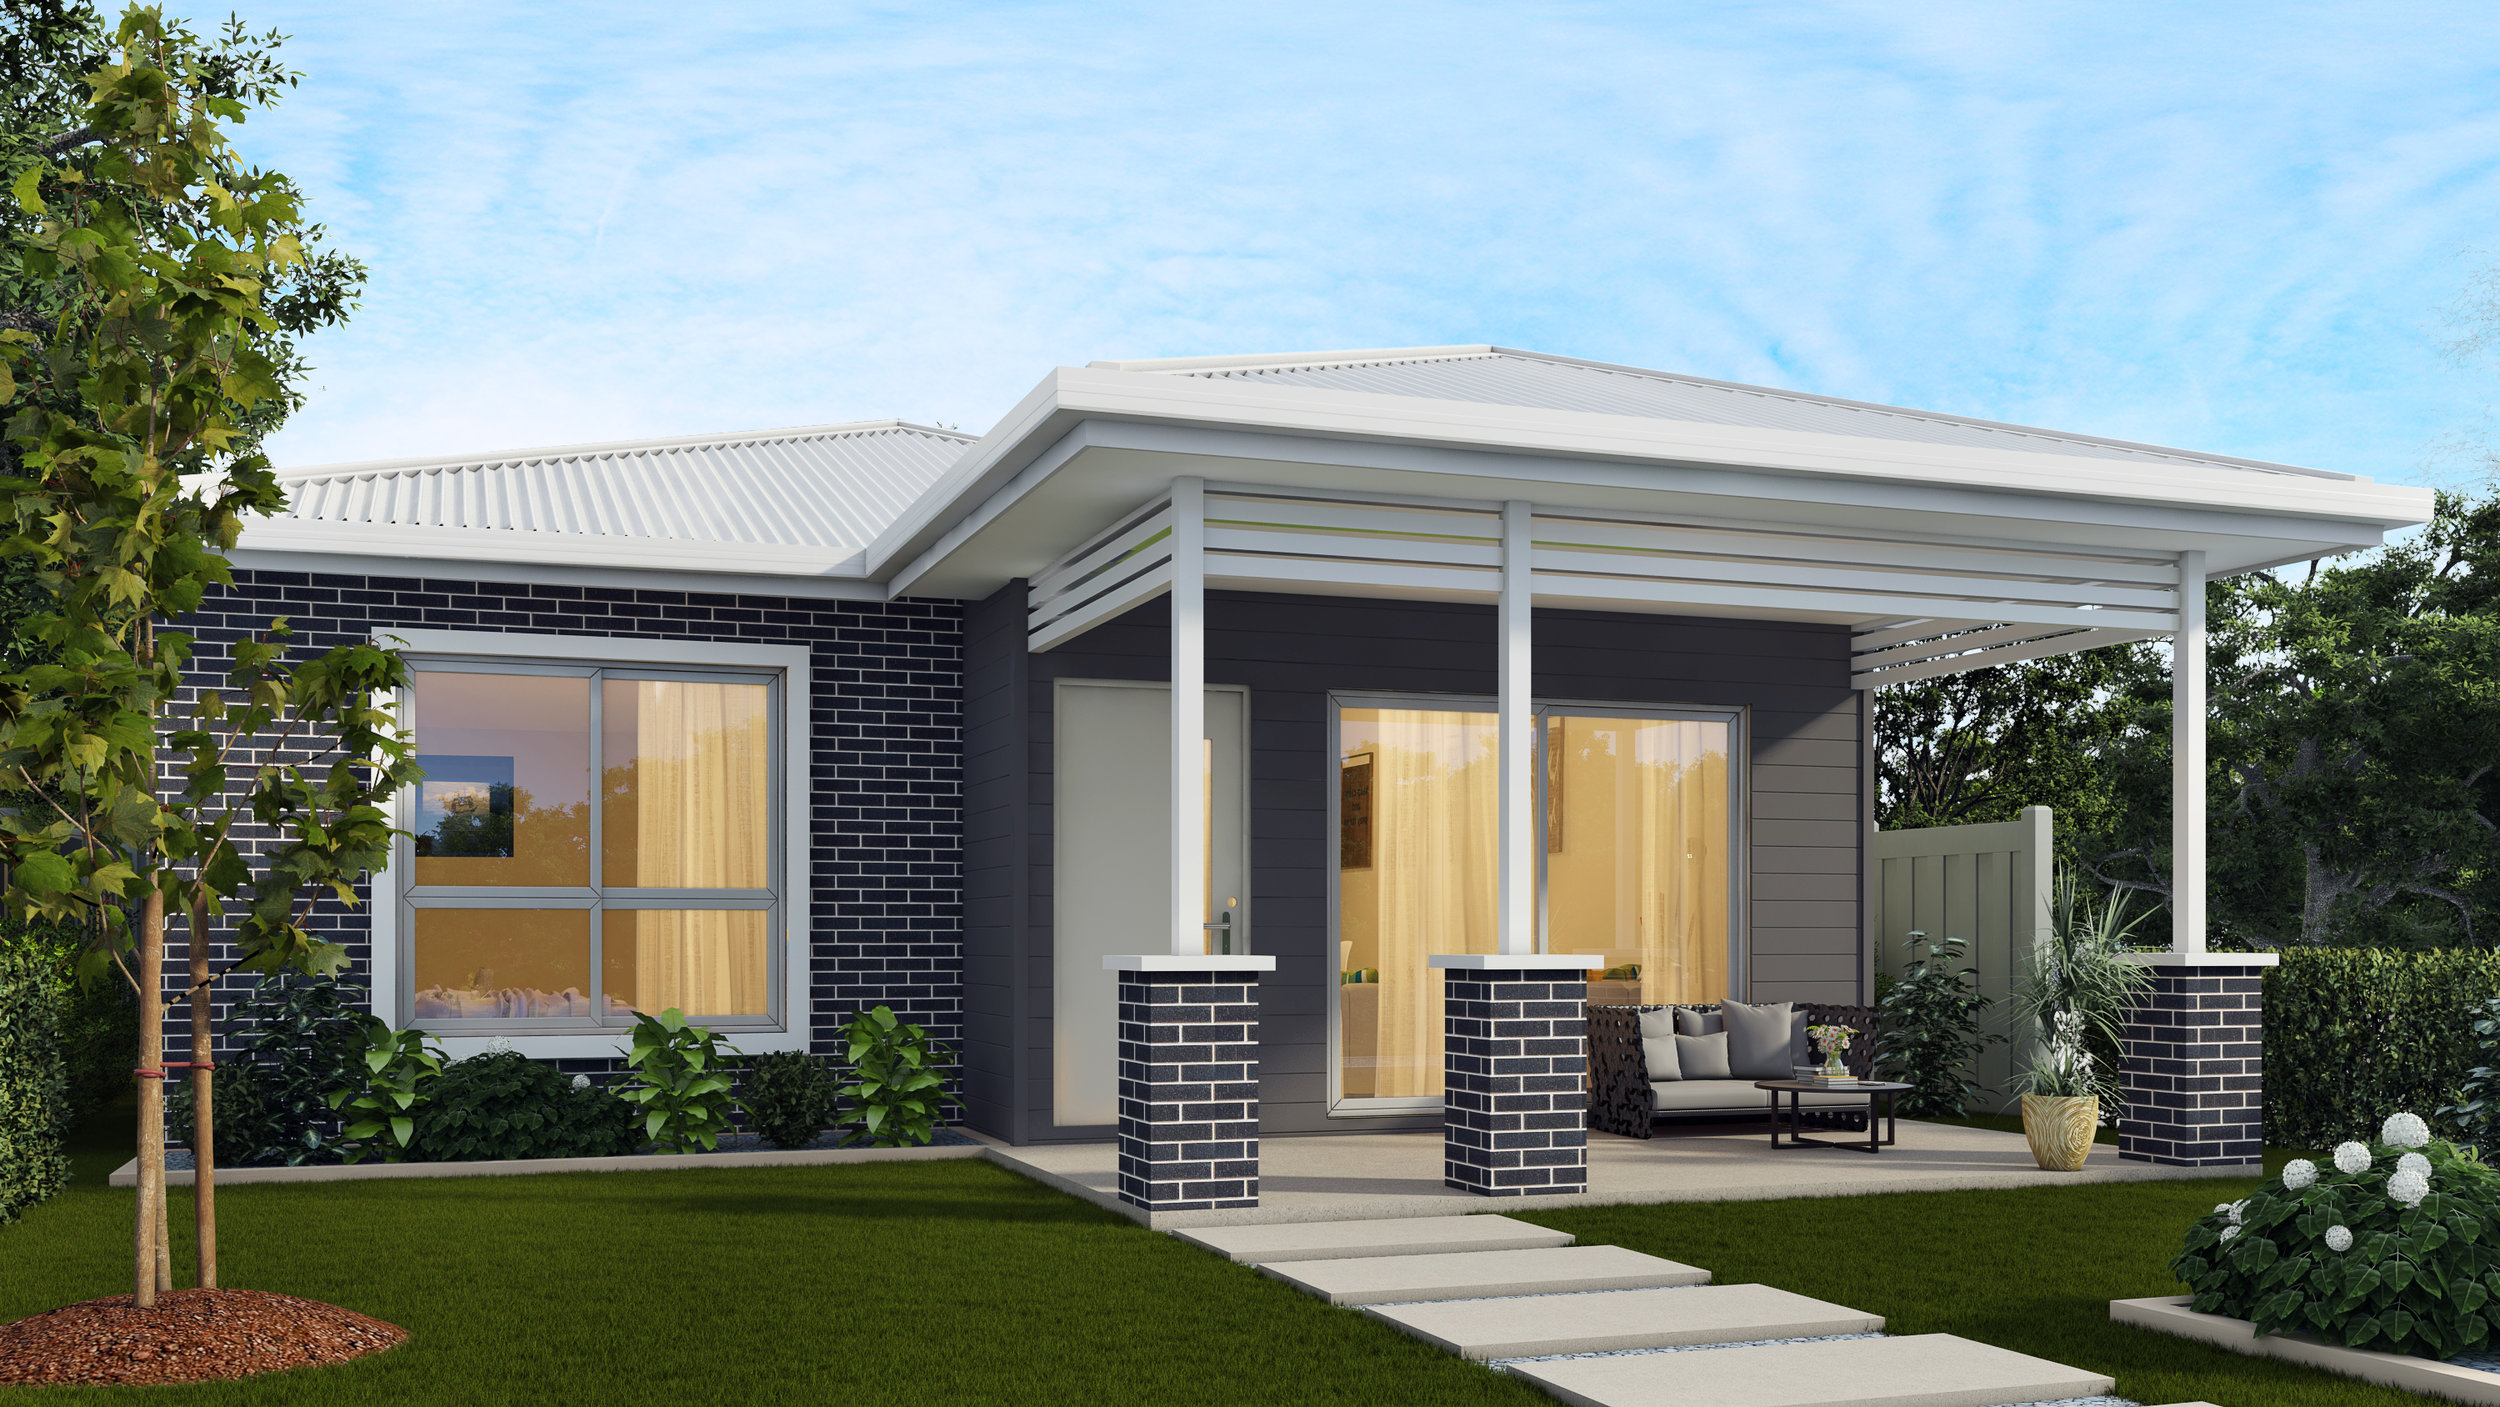 The Pavilion Entre - 4 Bed | 2 Bath | 2 Car Garage7.5m Laneway Lots